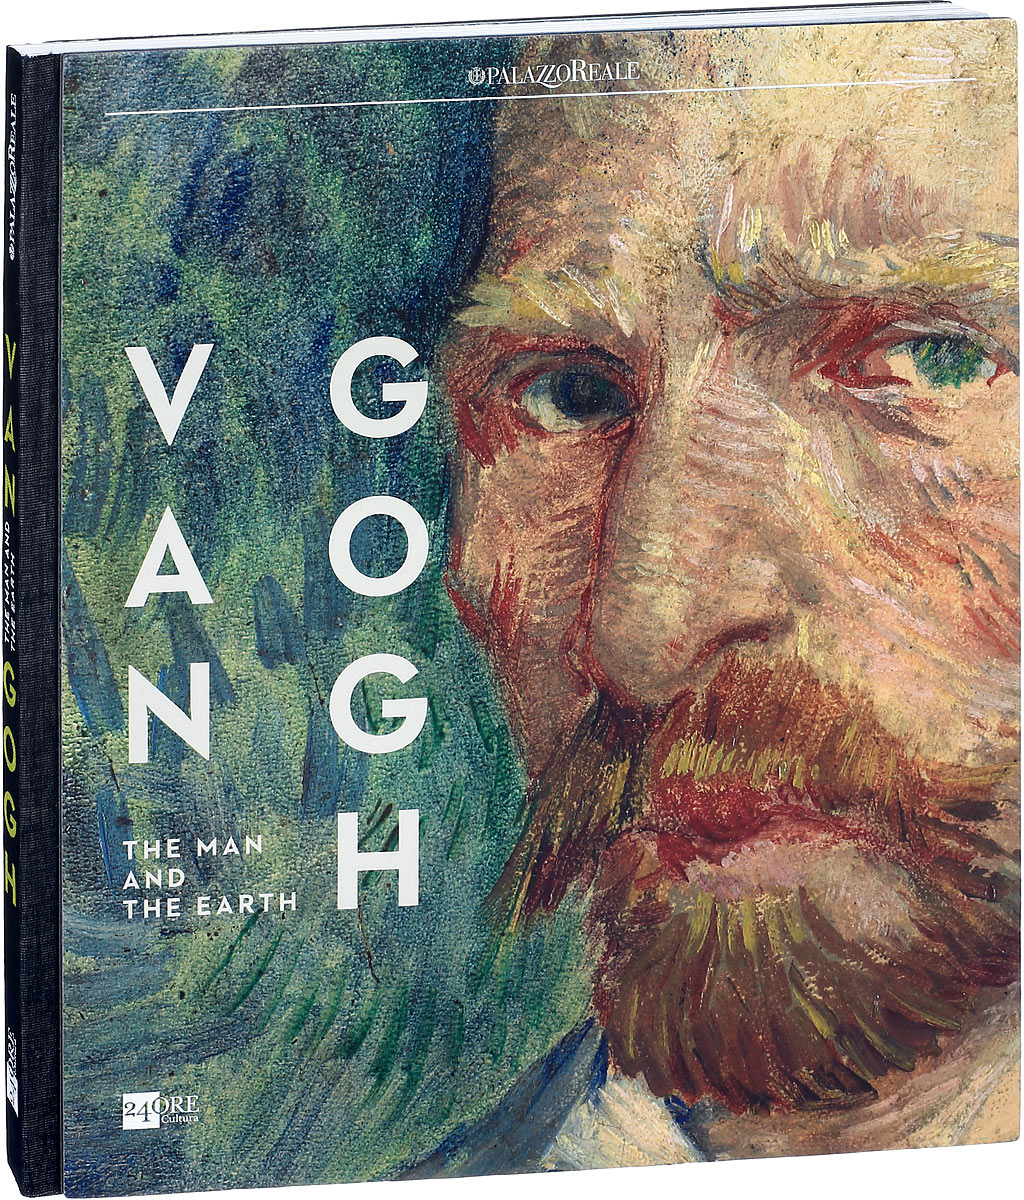 Van Gogh: The Man and the Earth the lorax